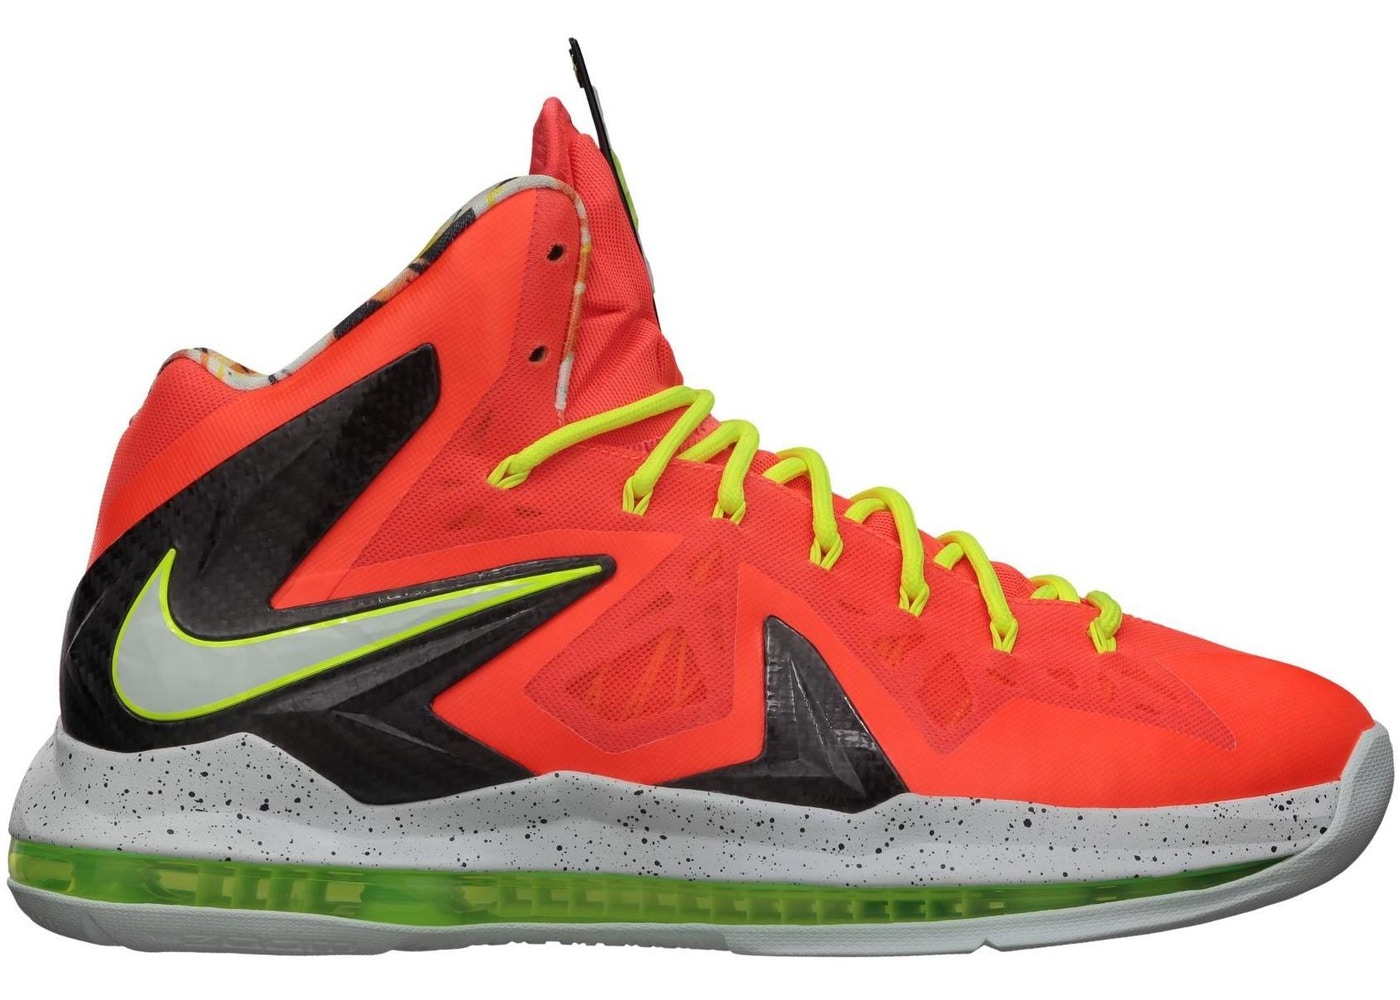 quality design 61875 97fca LeBron X Elite Total Crimson - 579827-800